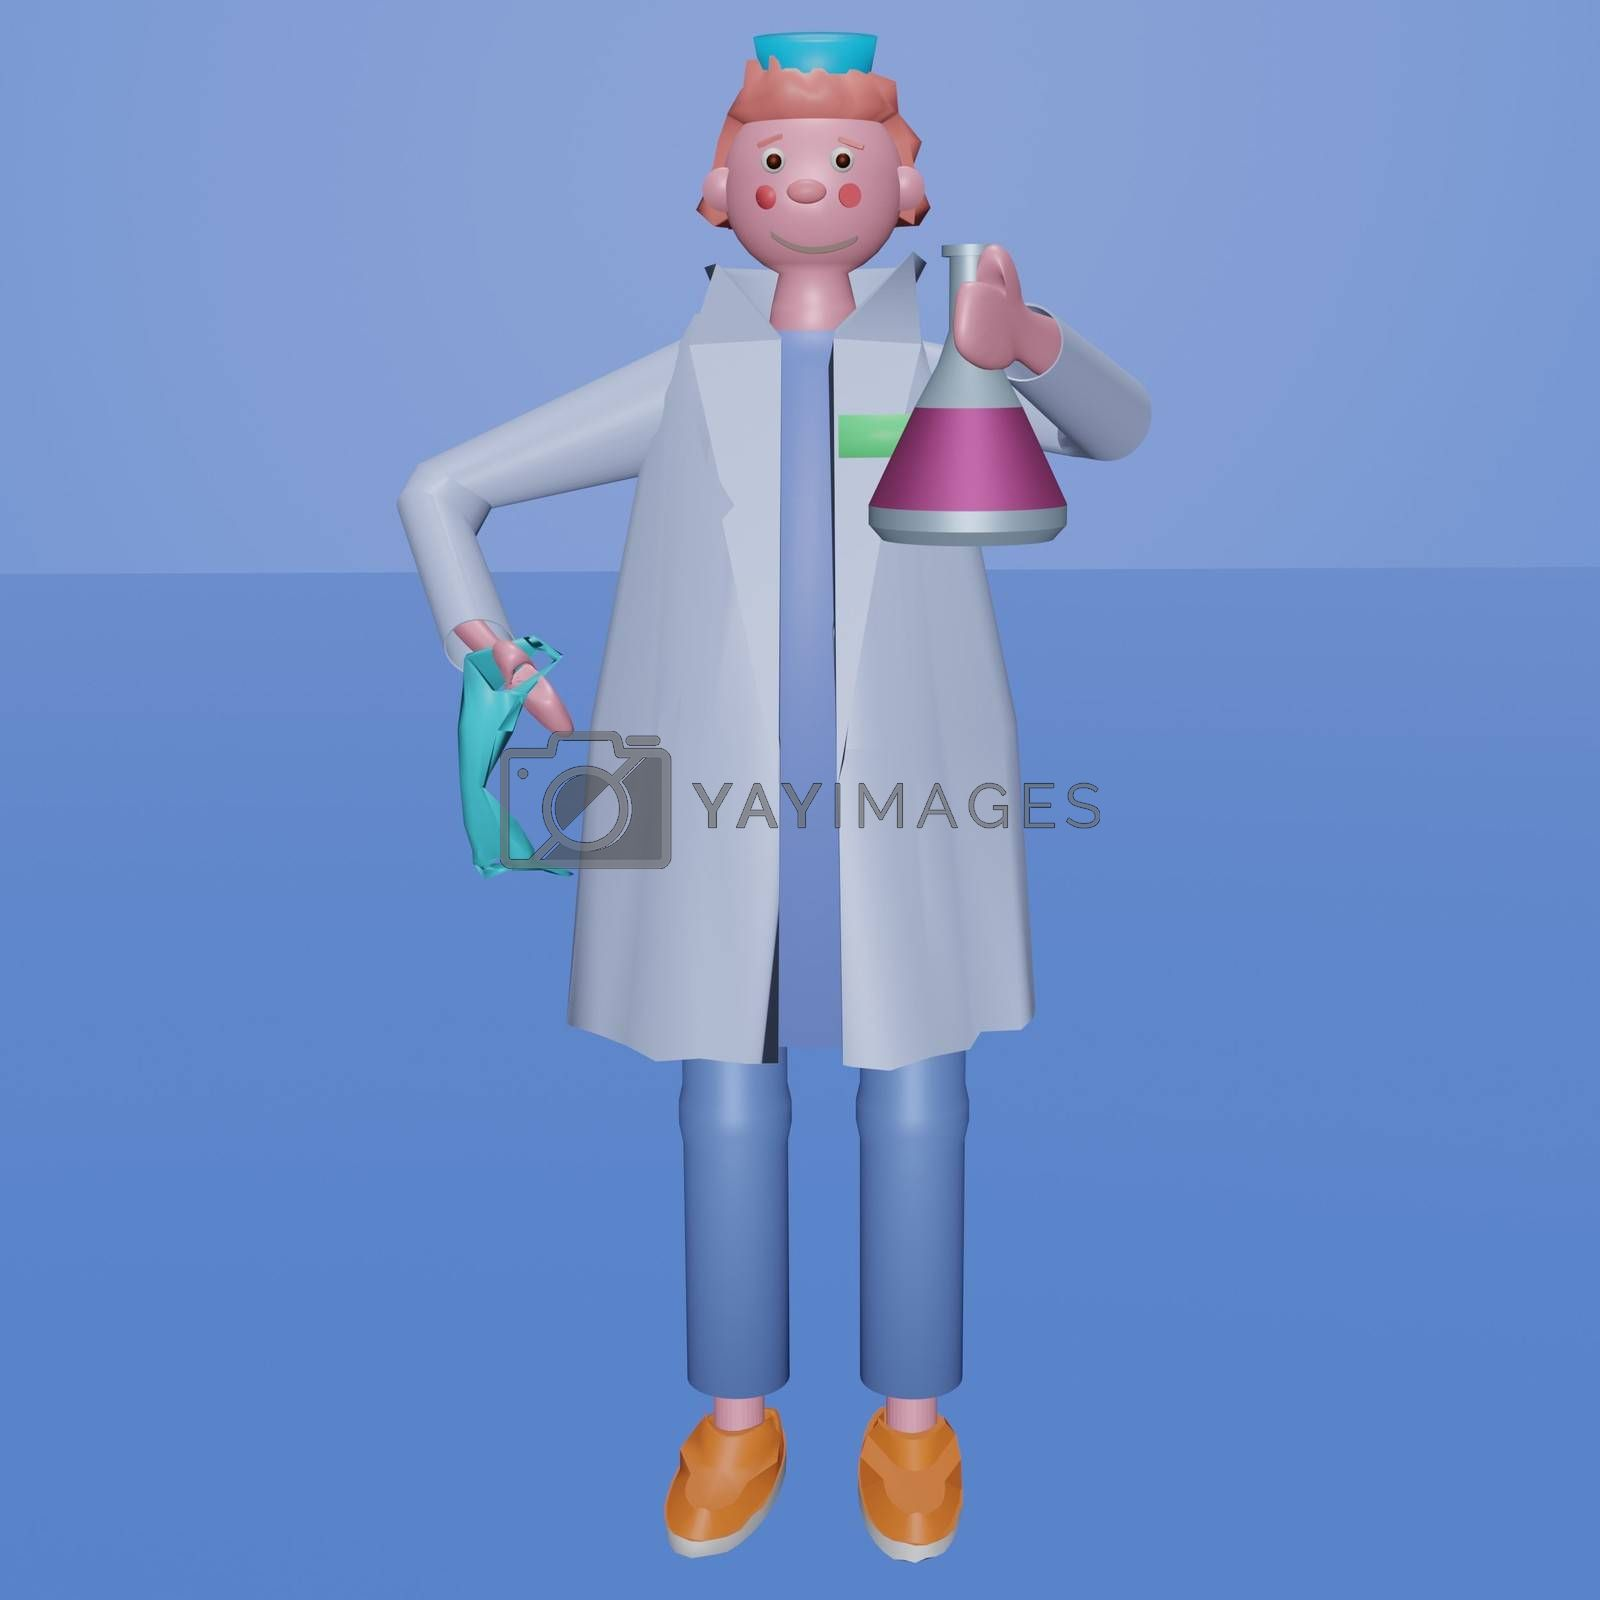 Medical scientist with a medical mask holding a glass test tube with liquid medicine or vaccine for the virus. 3D render illustration, volumetric image